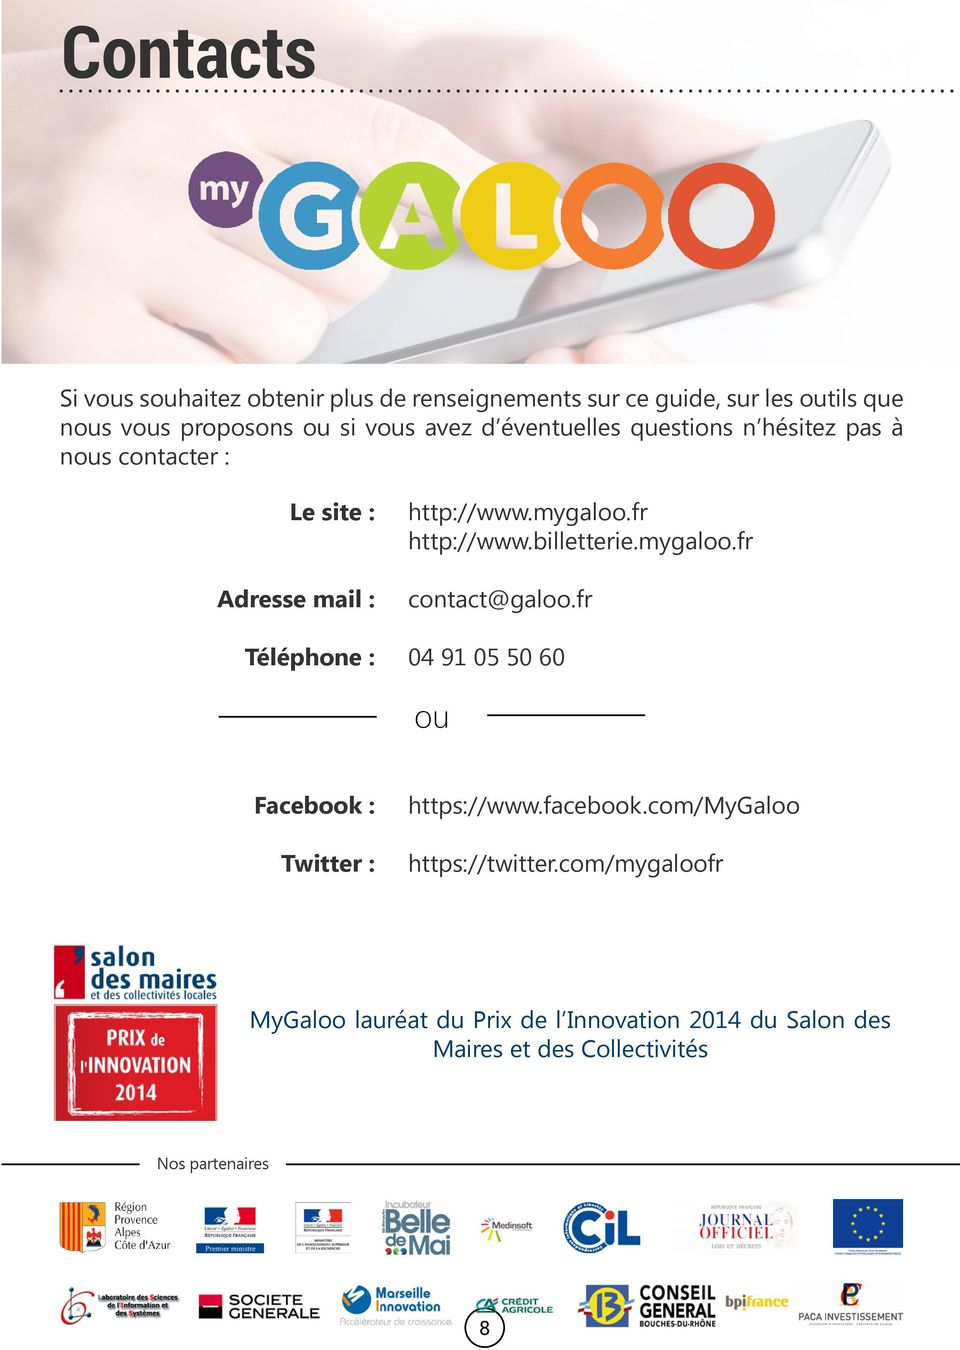 fr http://www.billetterie.mygaloo.fr contact@galoo.fr 04 91 05 50 60 ou Facebook : Twitter : https://www.facebook.